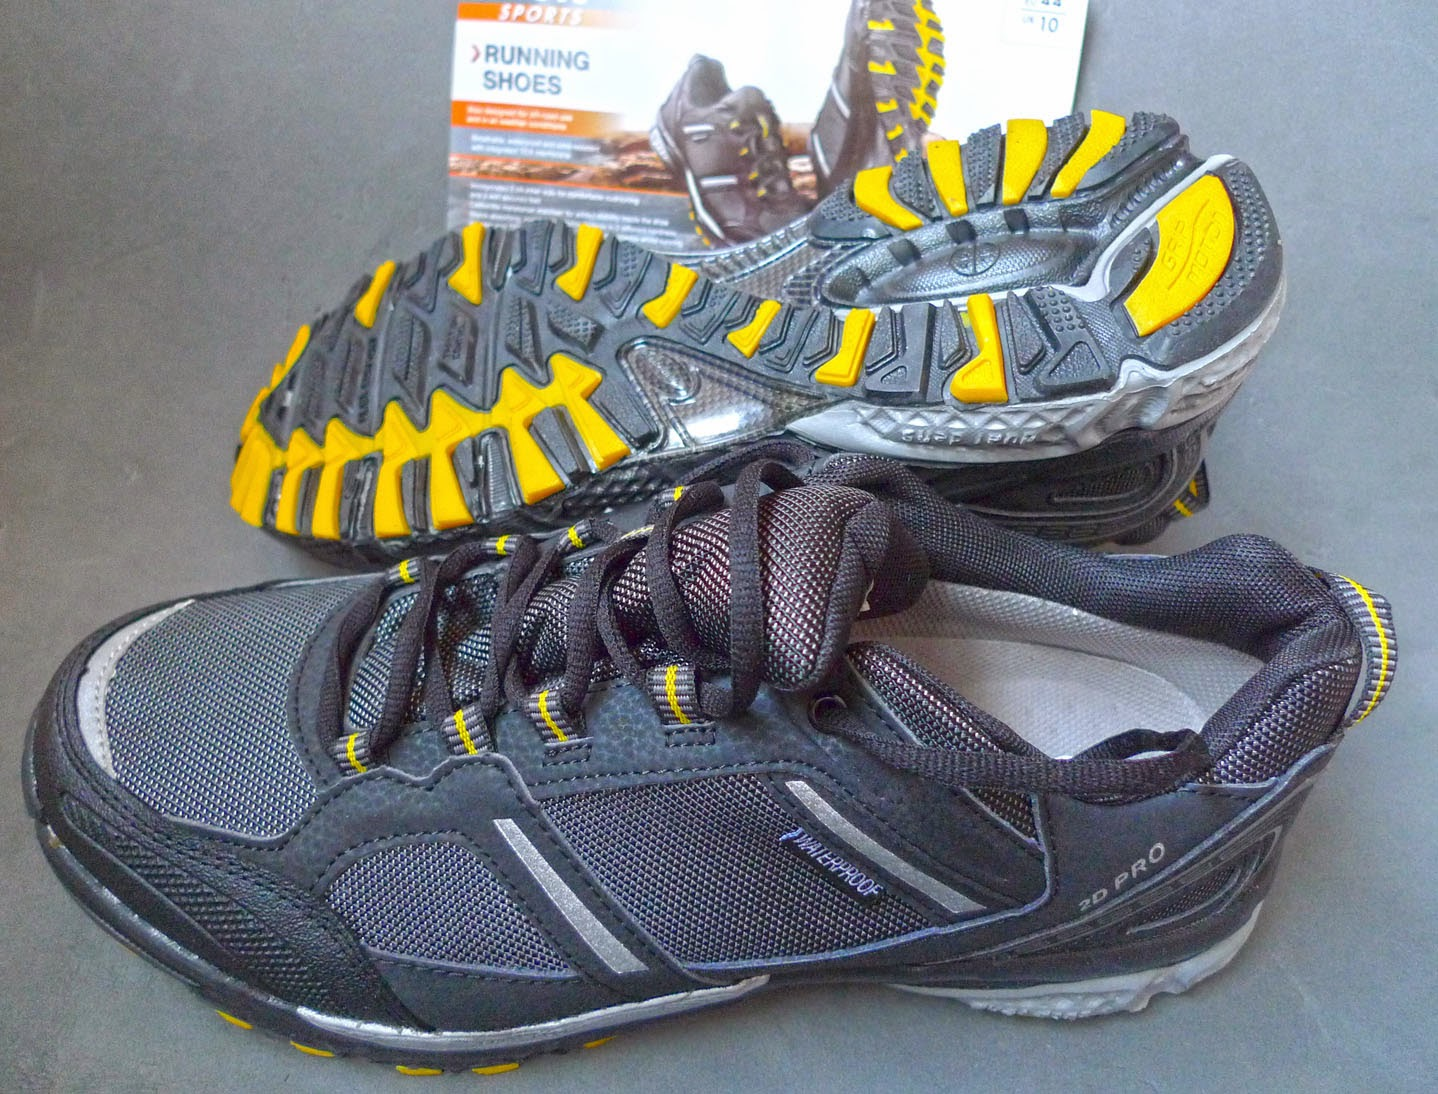 off Test PRO 2D Crivit road shoes running trailplodder wXIdvxnqq